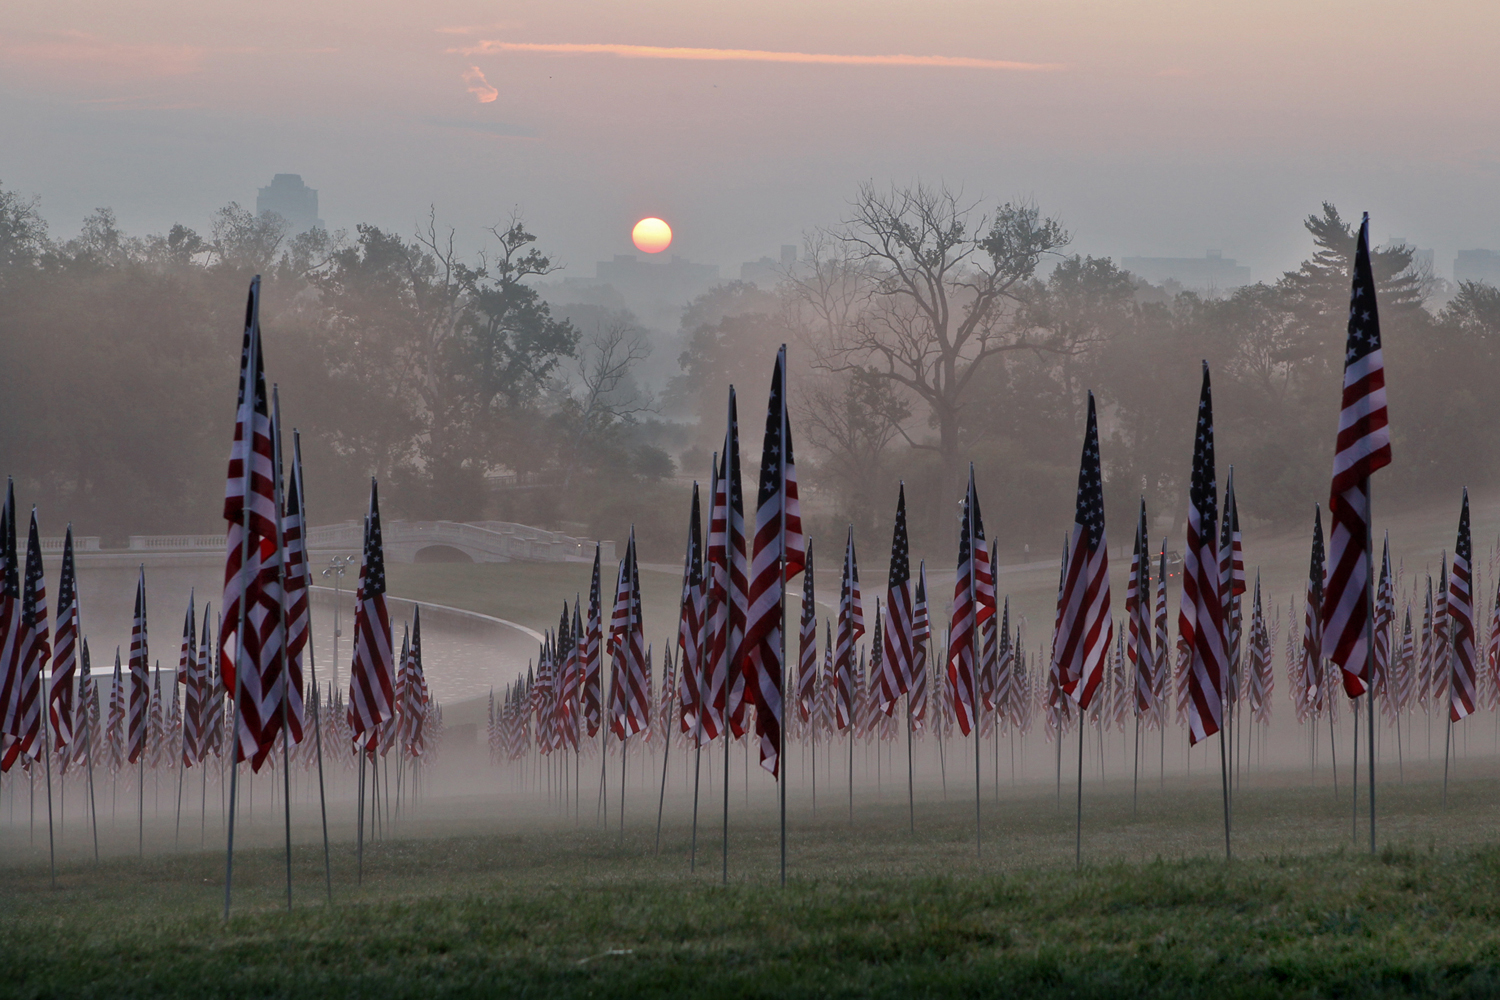 September 11, 2011. Three thousand flags rise out of the mist at dawn in Forest Park in St. Louis before the start of several ceremonies commemorating the 10 year anniversary of the 9/11 terrorists attacks.